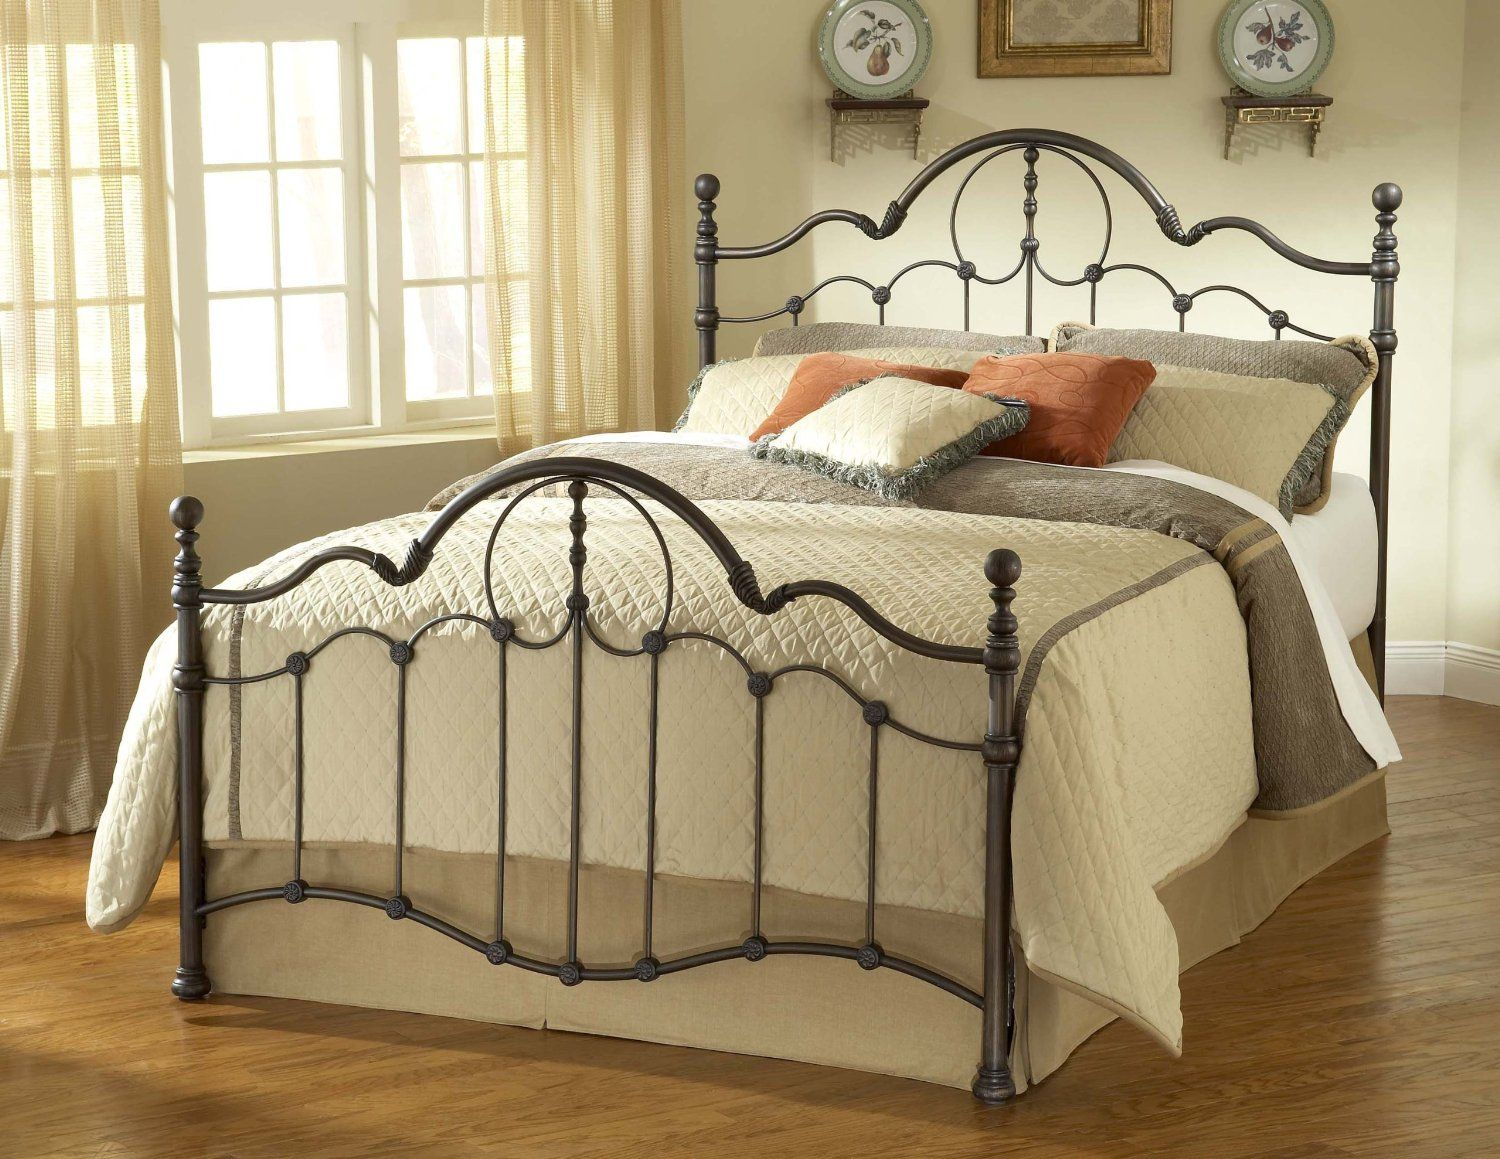 Amazon Com Hillsdale Furniture 1480bqr Venetian Bed Set With